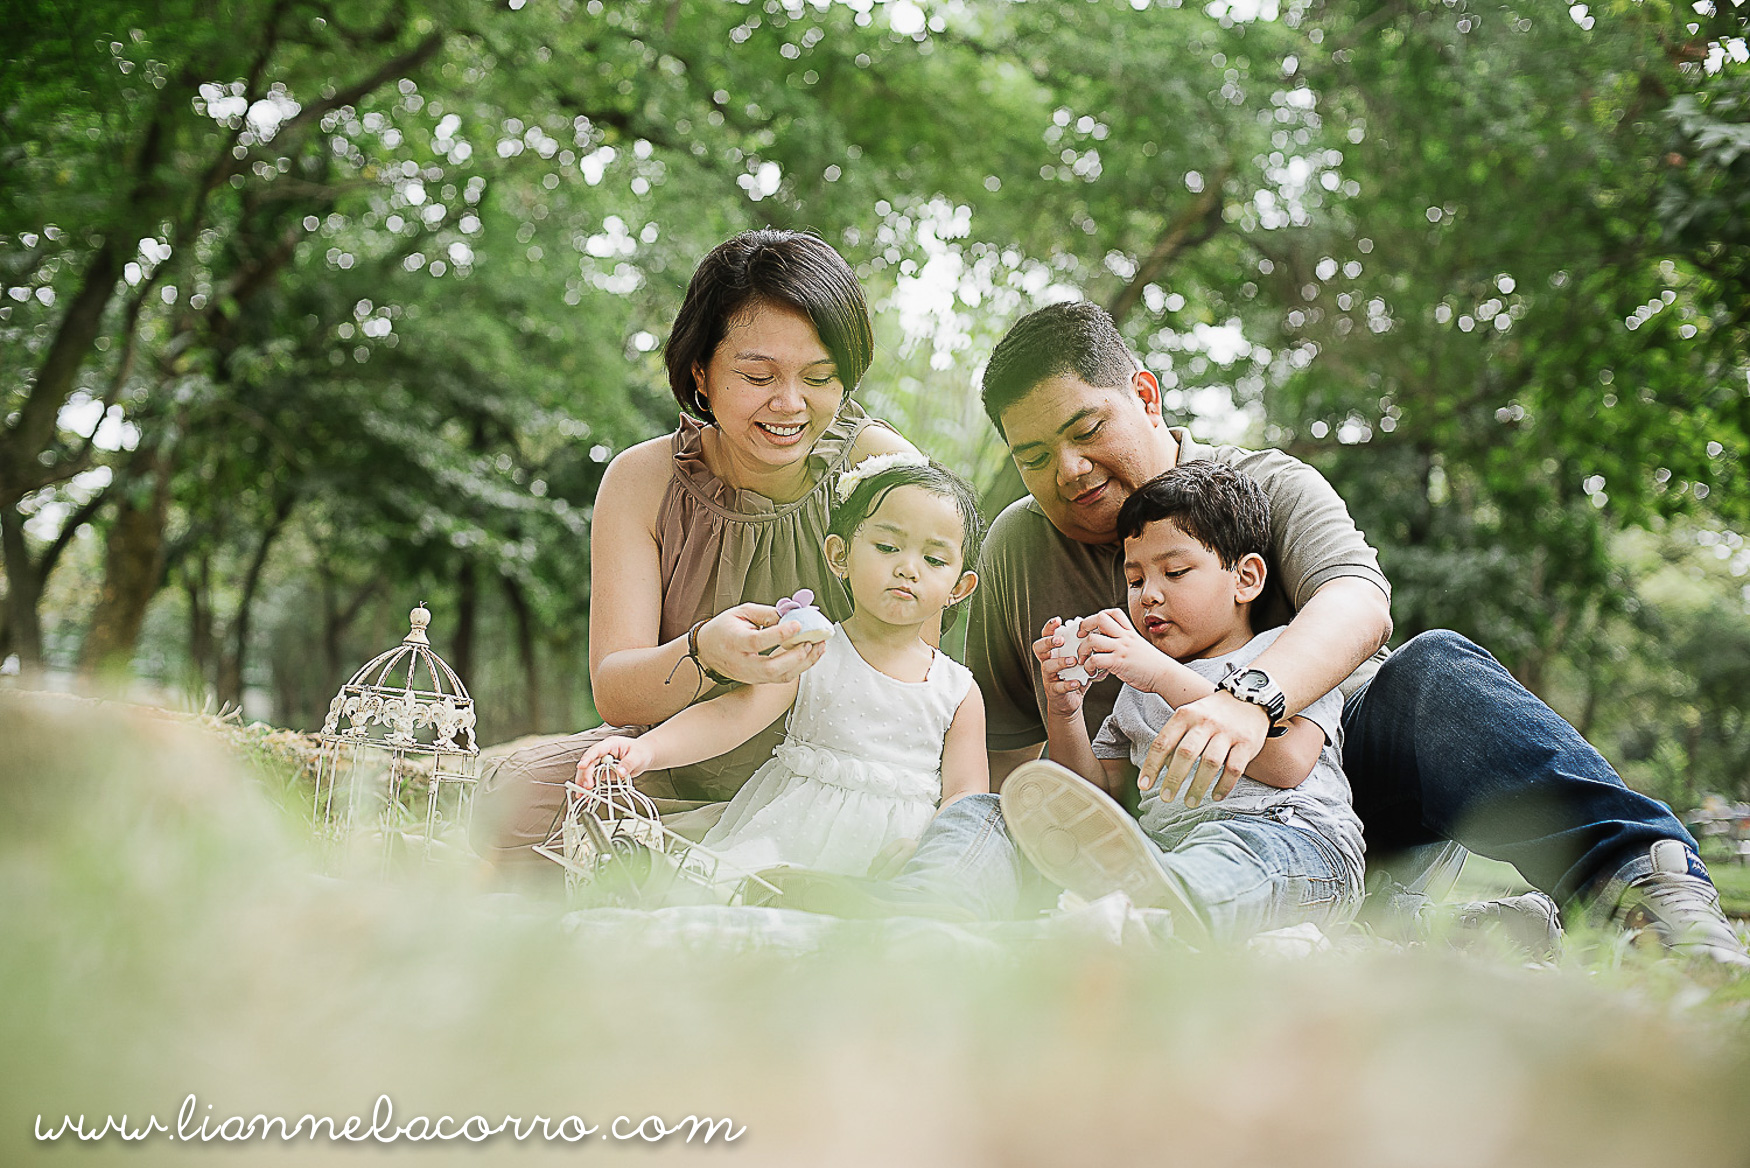 Lifestyle Maternity Family Photography by Lianne Bacorro-30